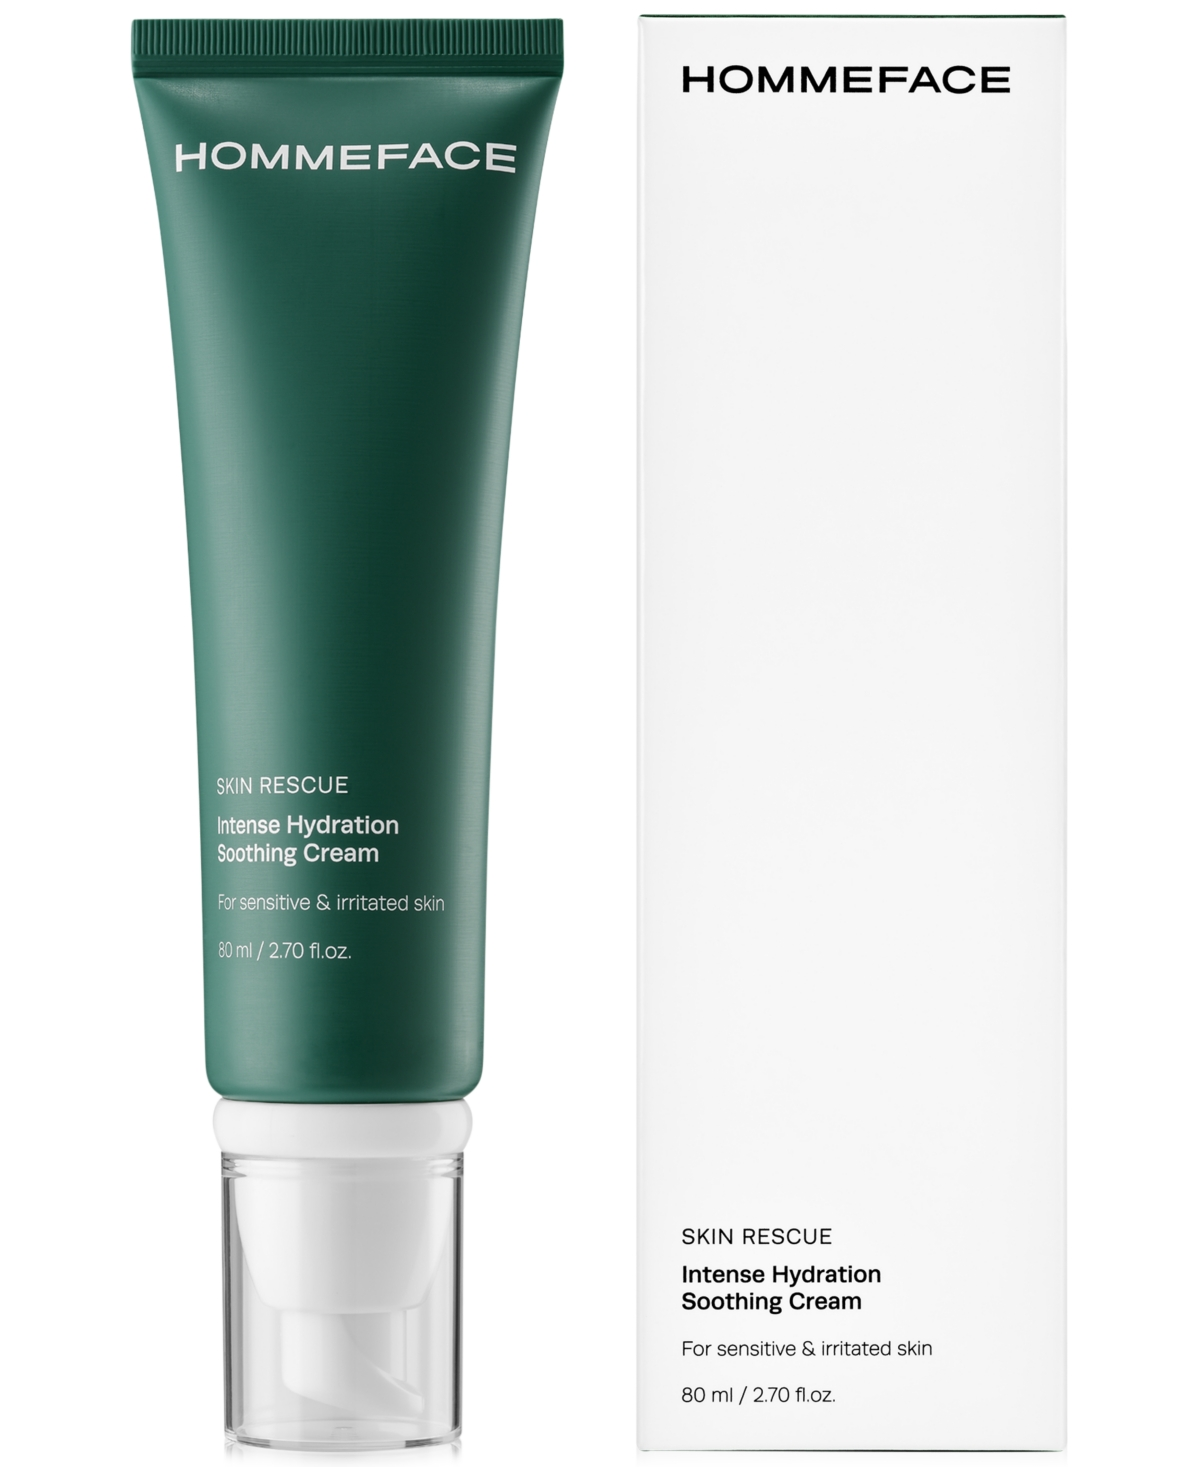 Skin Rescue Intense Hydration Soothing Cream For Sensitive & Irritated Skin